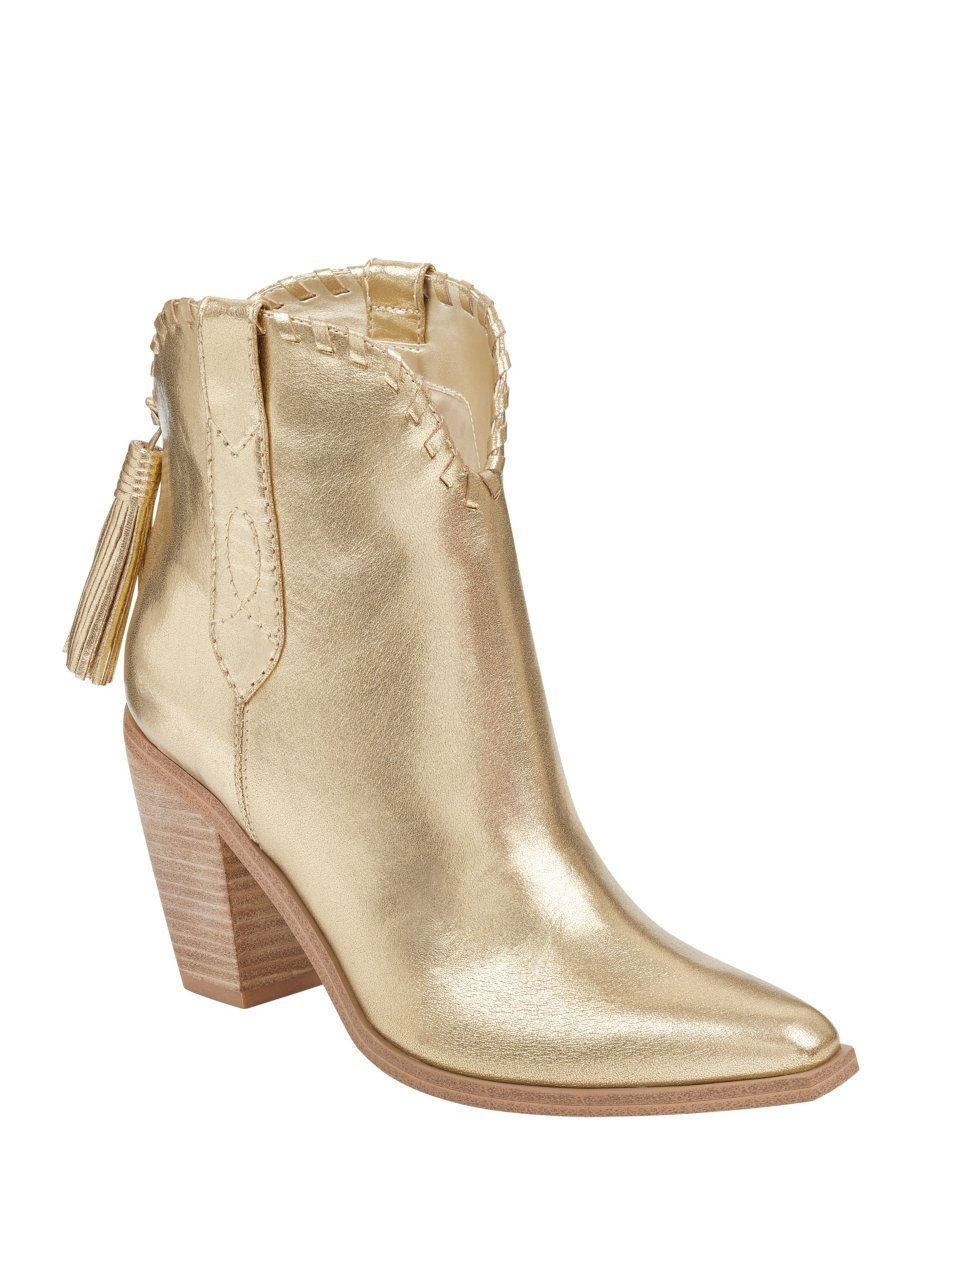 GUESS Women's Rodeo Faux-Leather Western Booties B07BL1DMNR 8.5 M US|Gold